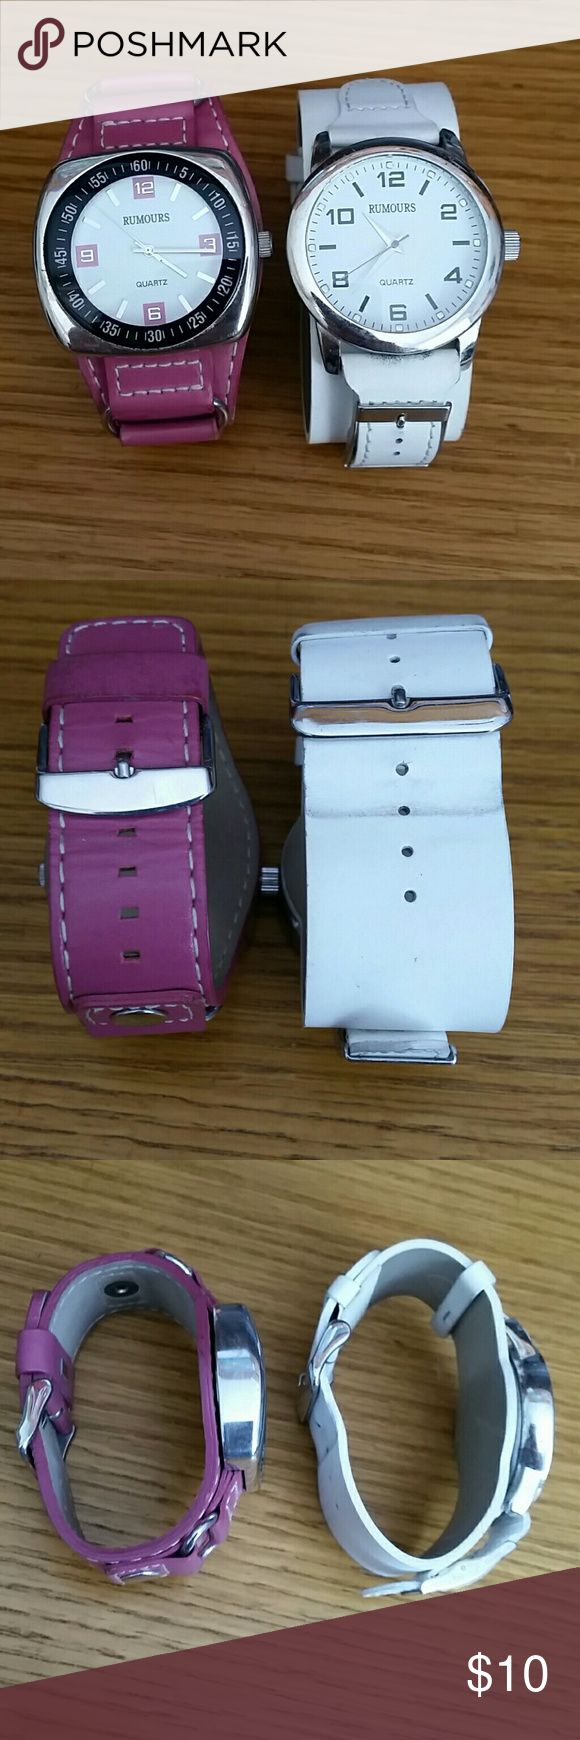 One bundle of 2 Leather Rumours Watches Bundle of 2 Rumours watches with thick leather biker style bands. Both have been worn before and do show signs of wear. *please look at all photos carefully*. BOTH WATCHES WORK BUT DO REQUIRE NEW BATTERIES. One band is pink and the otber white Rumours Accessories Watches